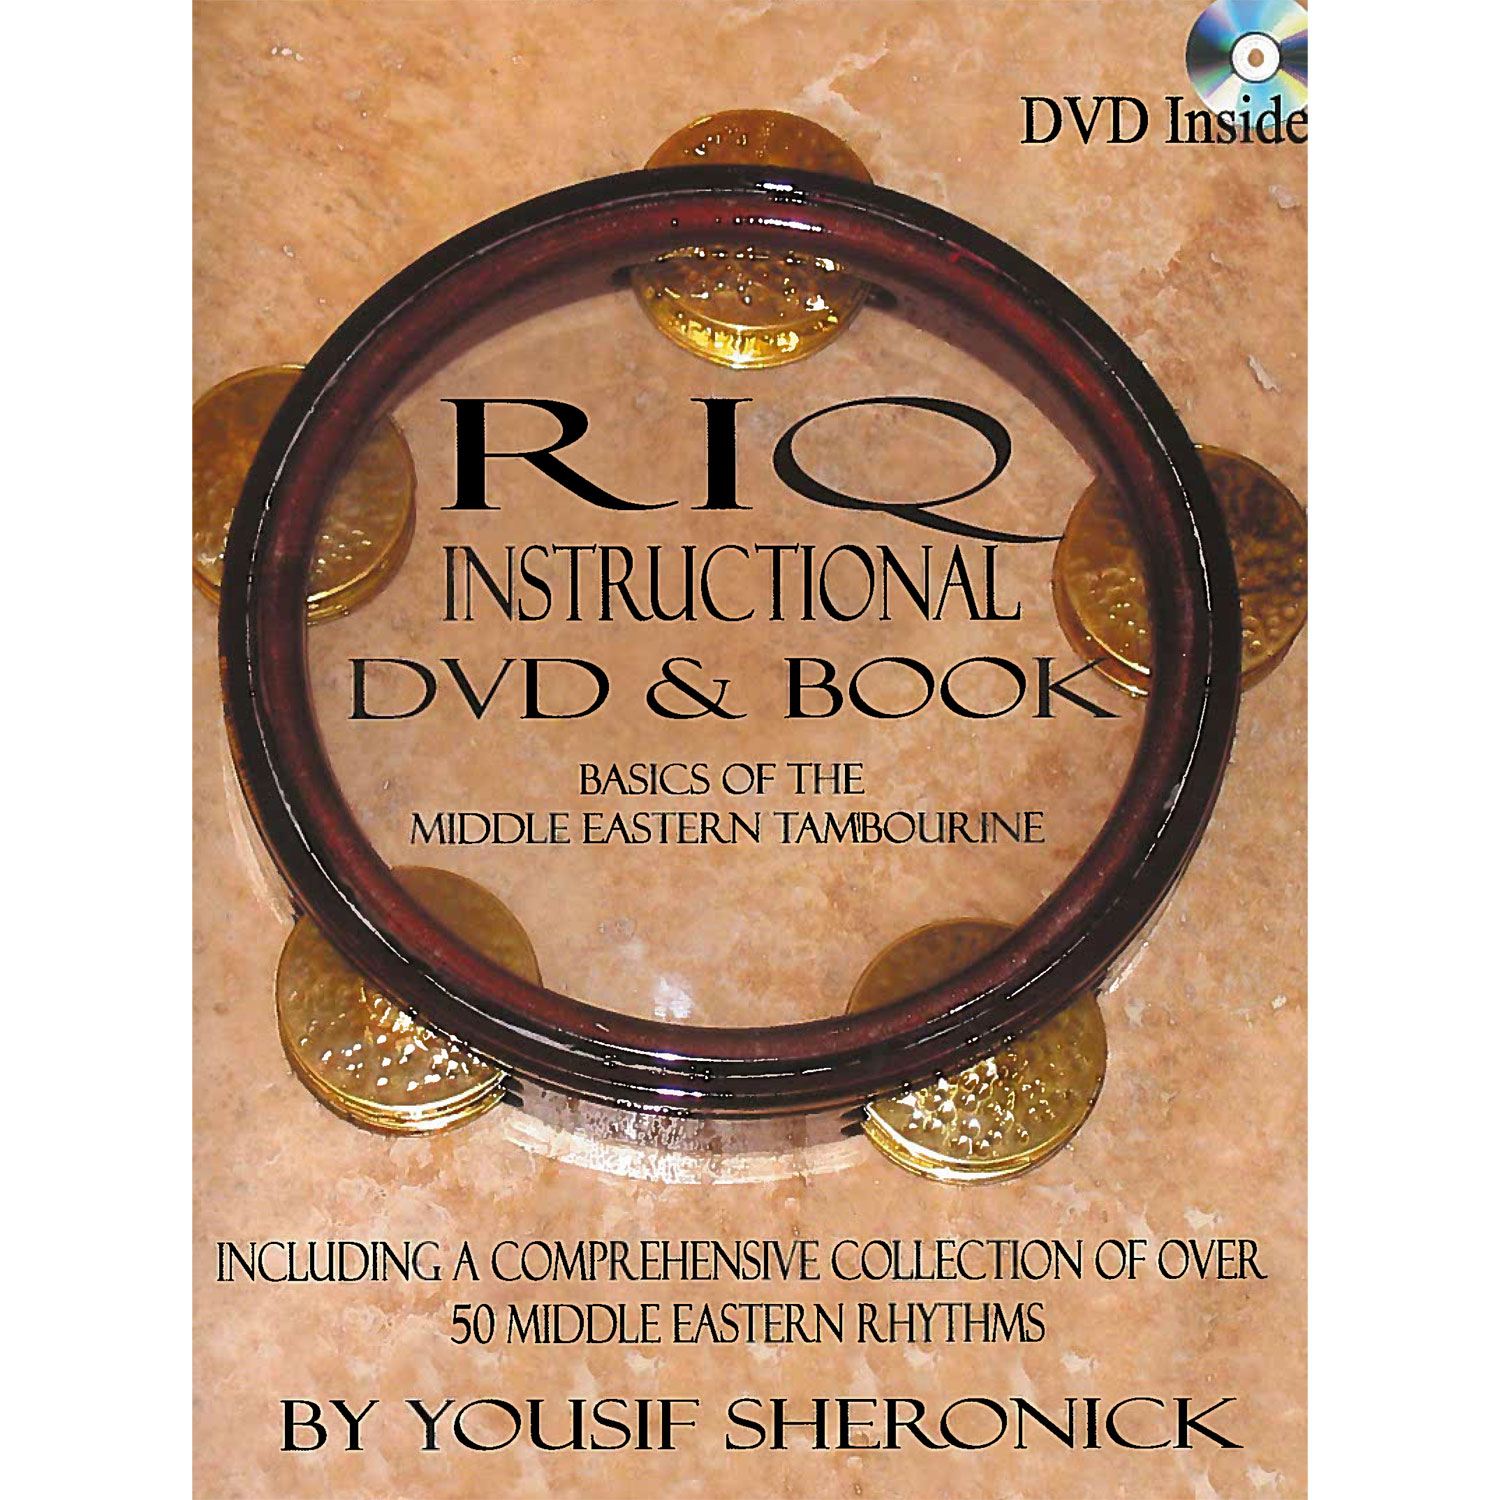 Riq Instructional DVD & Book by Yousif Sheronick